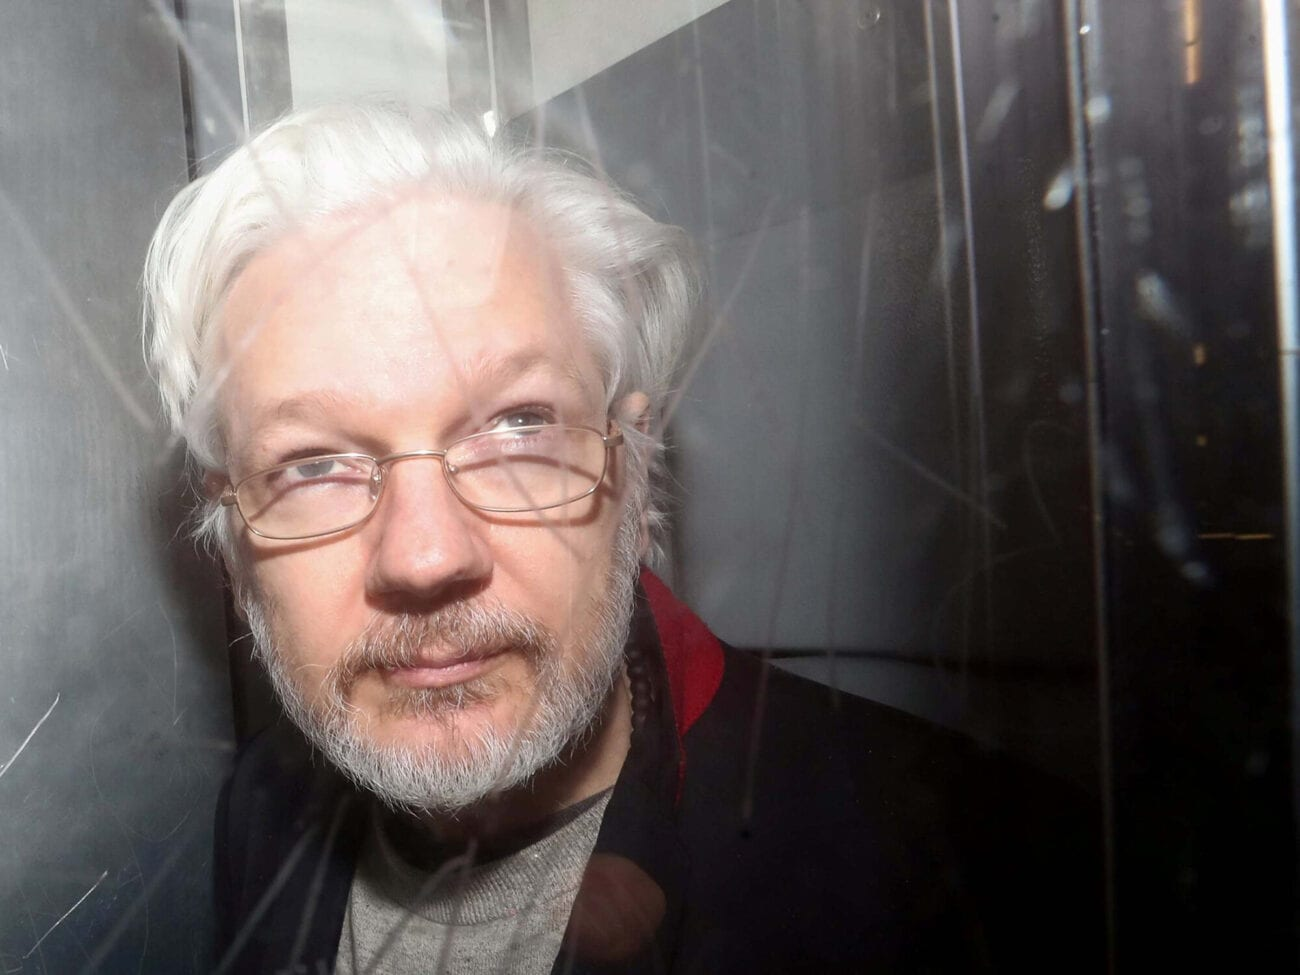 Julian Assange is still on the run for his part in the WikiLeaks scandal. Find out whether Assange will finally have to face consequences in court.